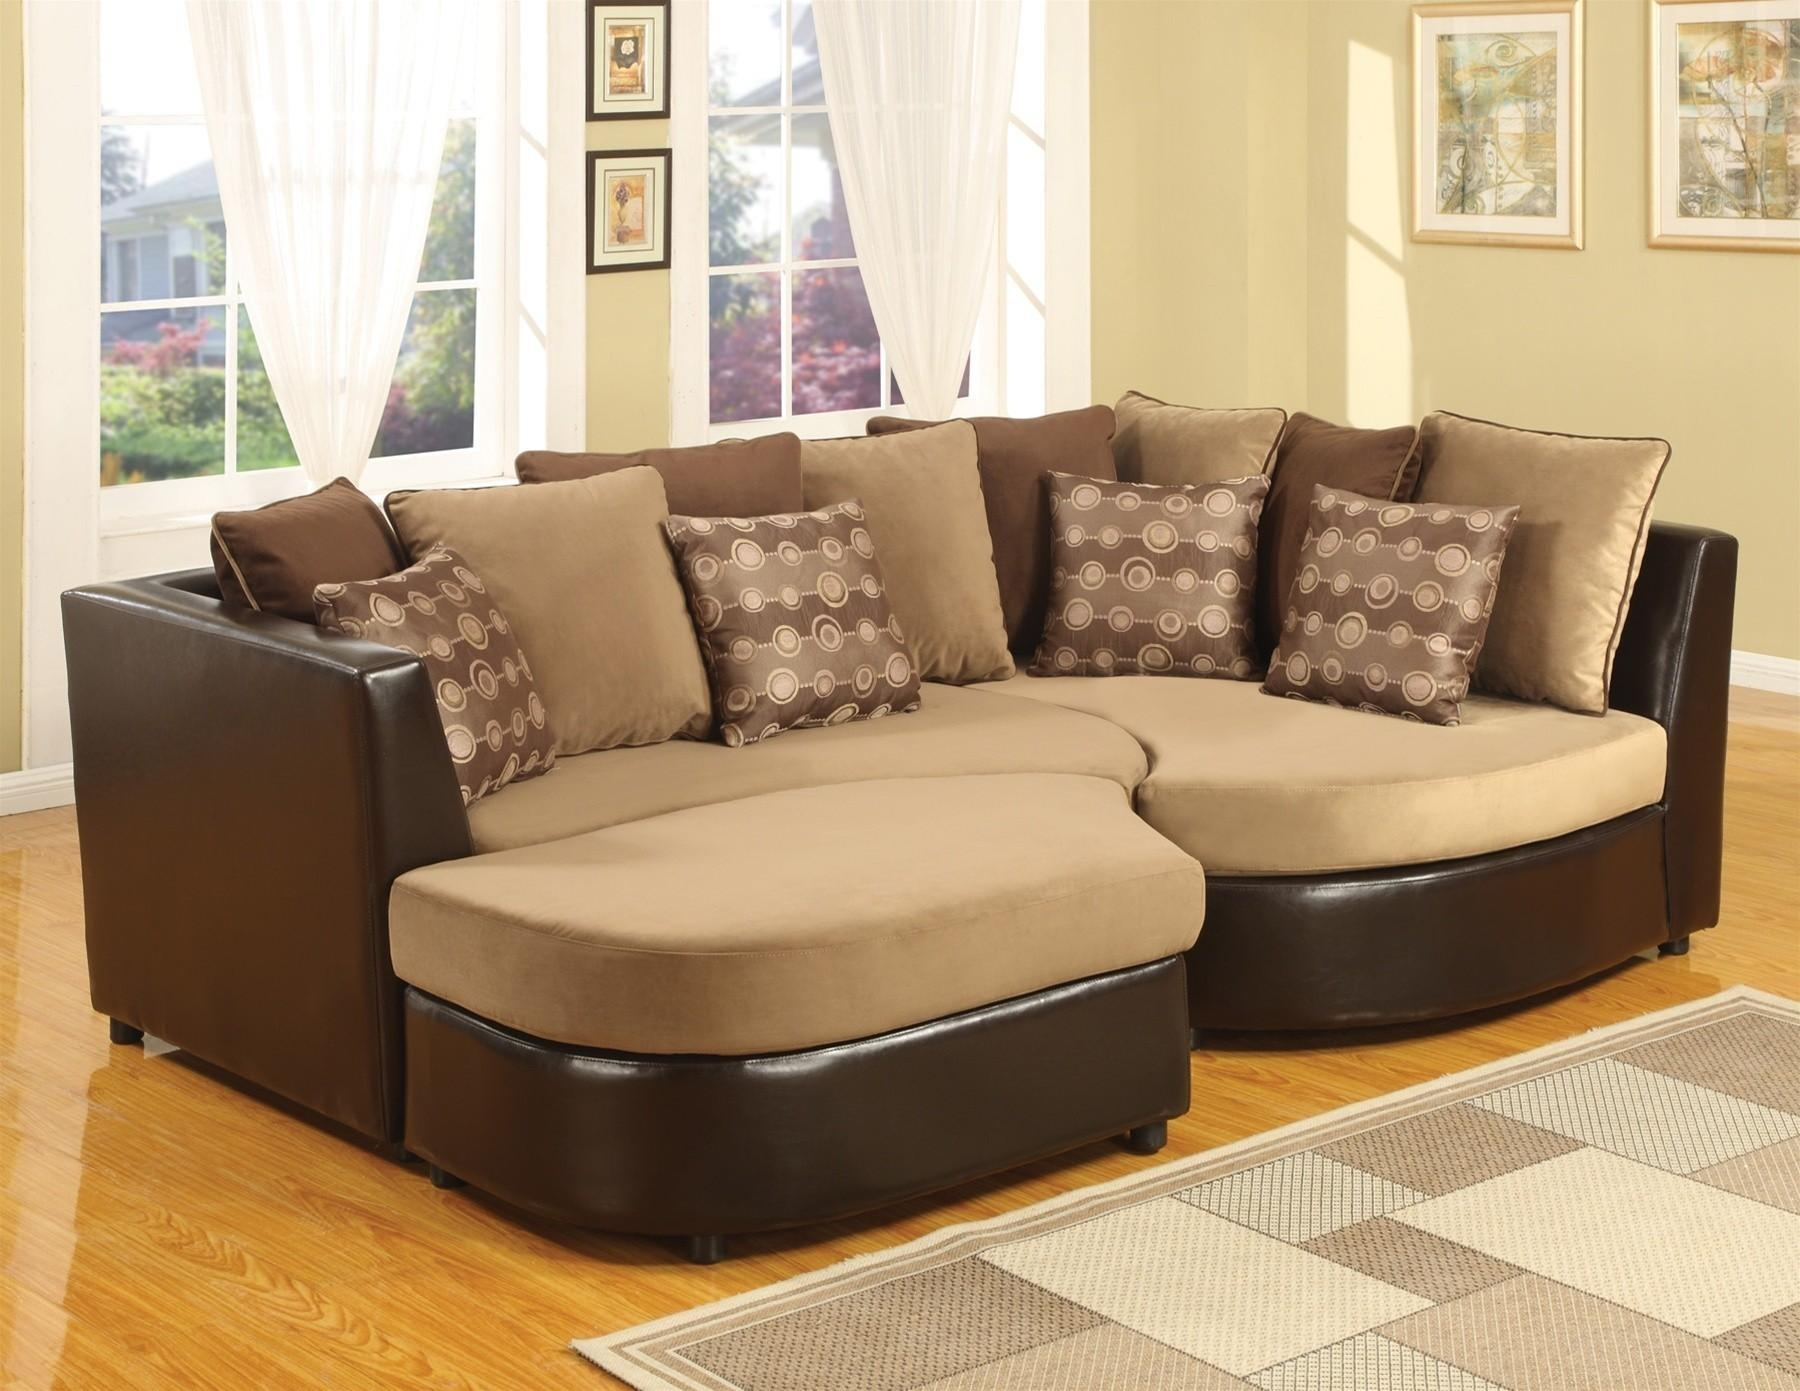 Ashley Marble 3 Piece Raf Sectional Sofa Chaise Armless Love In Deep Seat Leather Sectional (View 9 of 15)